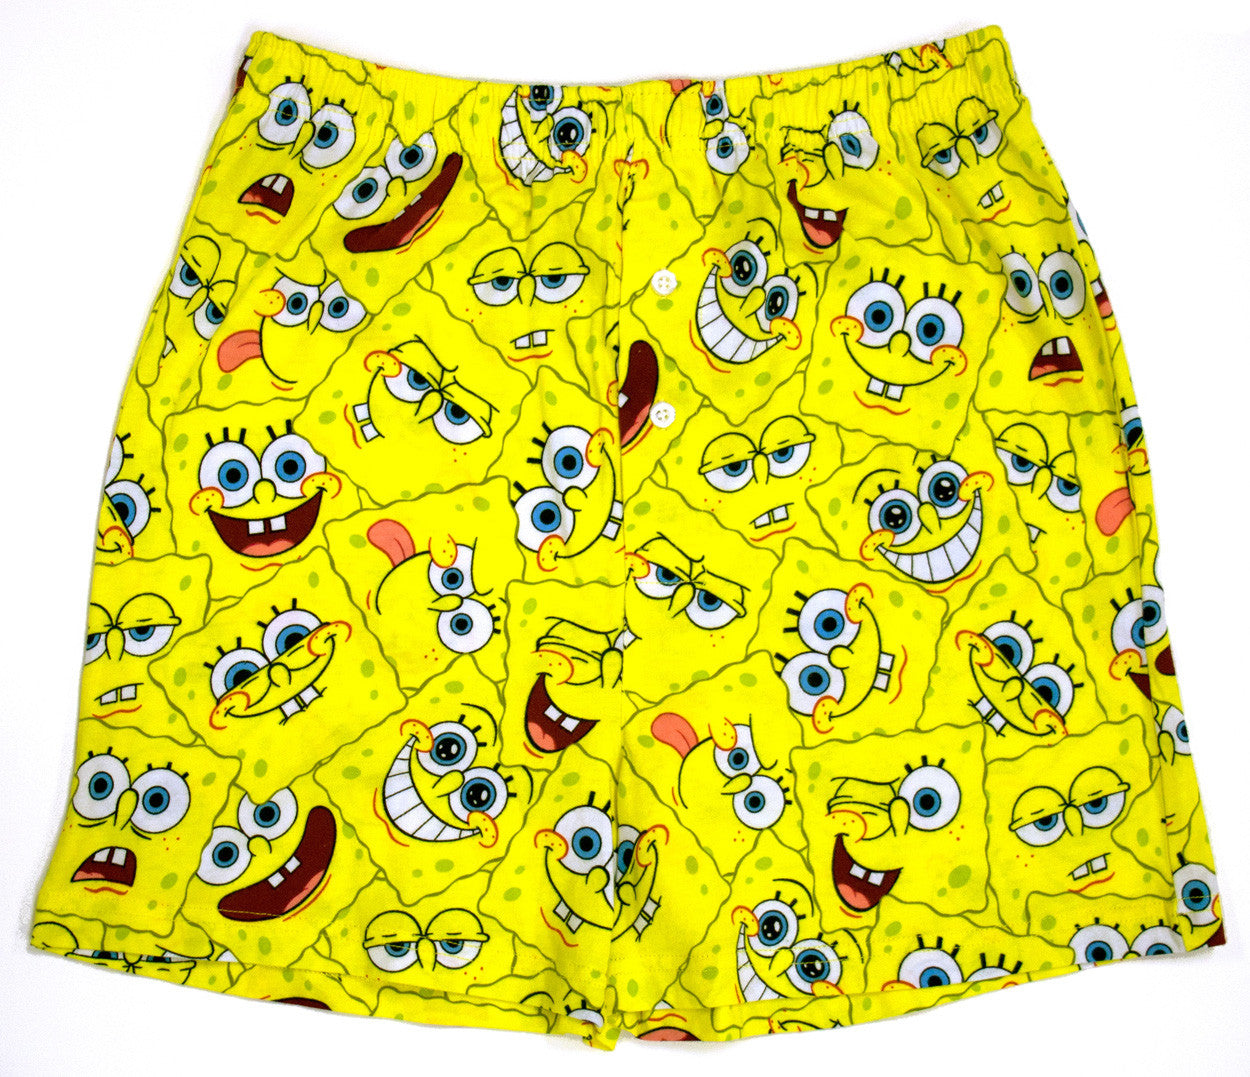 SpongeBob SquarePants mens faces lounge shorts